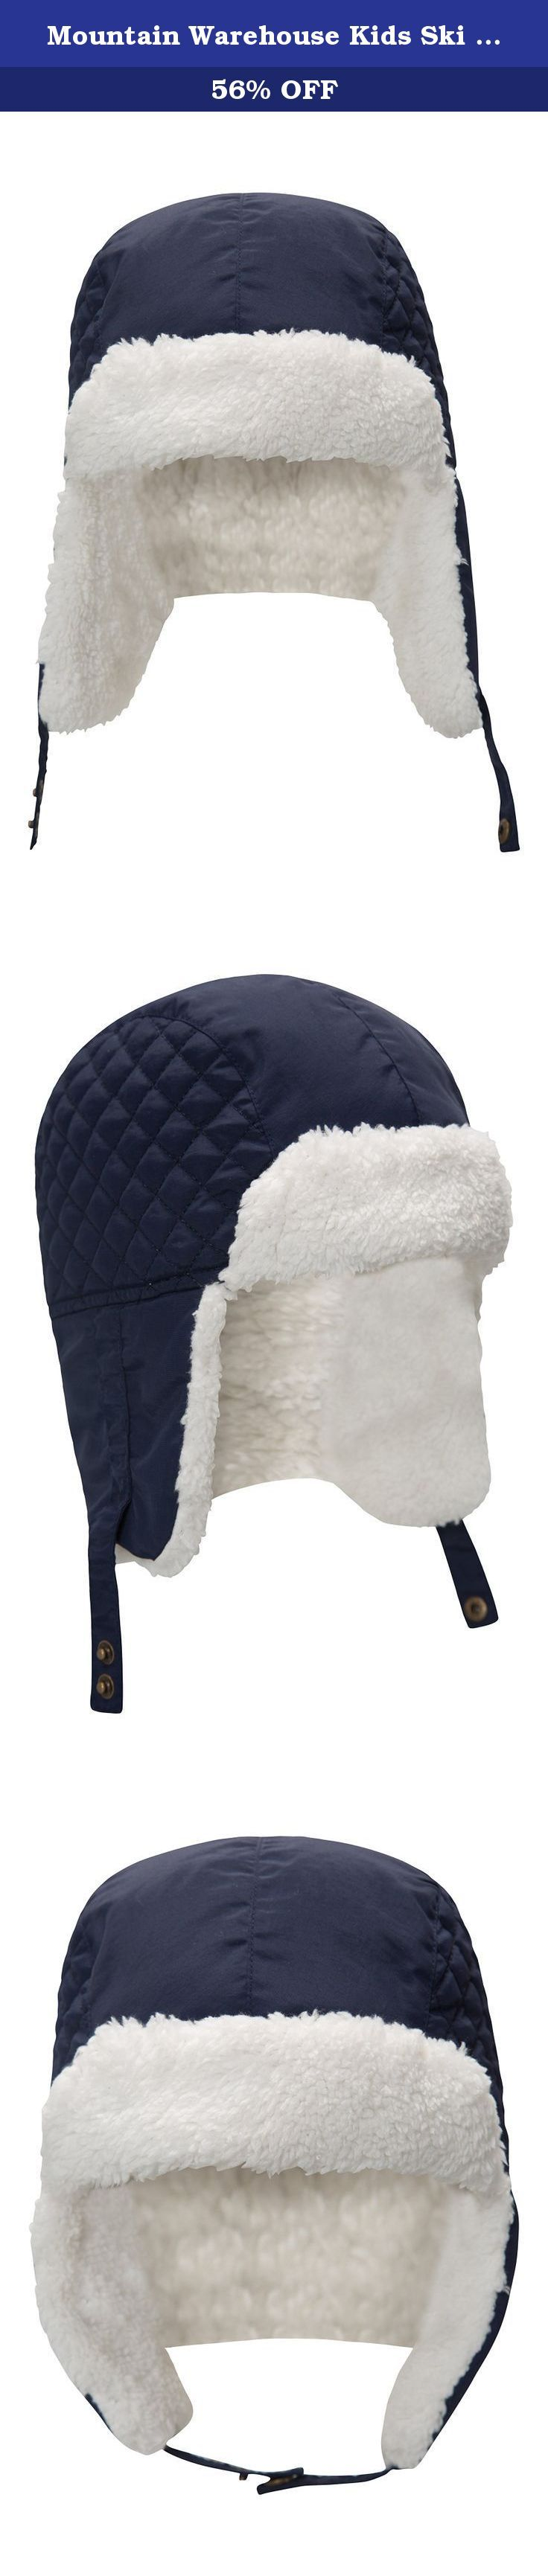 Mountain Warehouse Kids Ski Trapper Navy. The Kids Ski Trapper is a very warm and comfortable hat, ideal for skiing and everyday wear. With a faux fur lining and a longer back for extra protection, this hat is great for keeping the little one's head warm when out and about in the cold. Lining - With a faux fur lining for extra warmth and protection Composition - 100% Polyester Ear flaps - With ear flaps to keep ears protected and covered in the cold One size - One size to fit all Ref:...